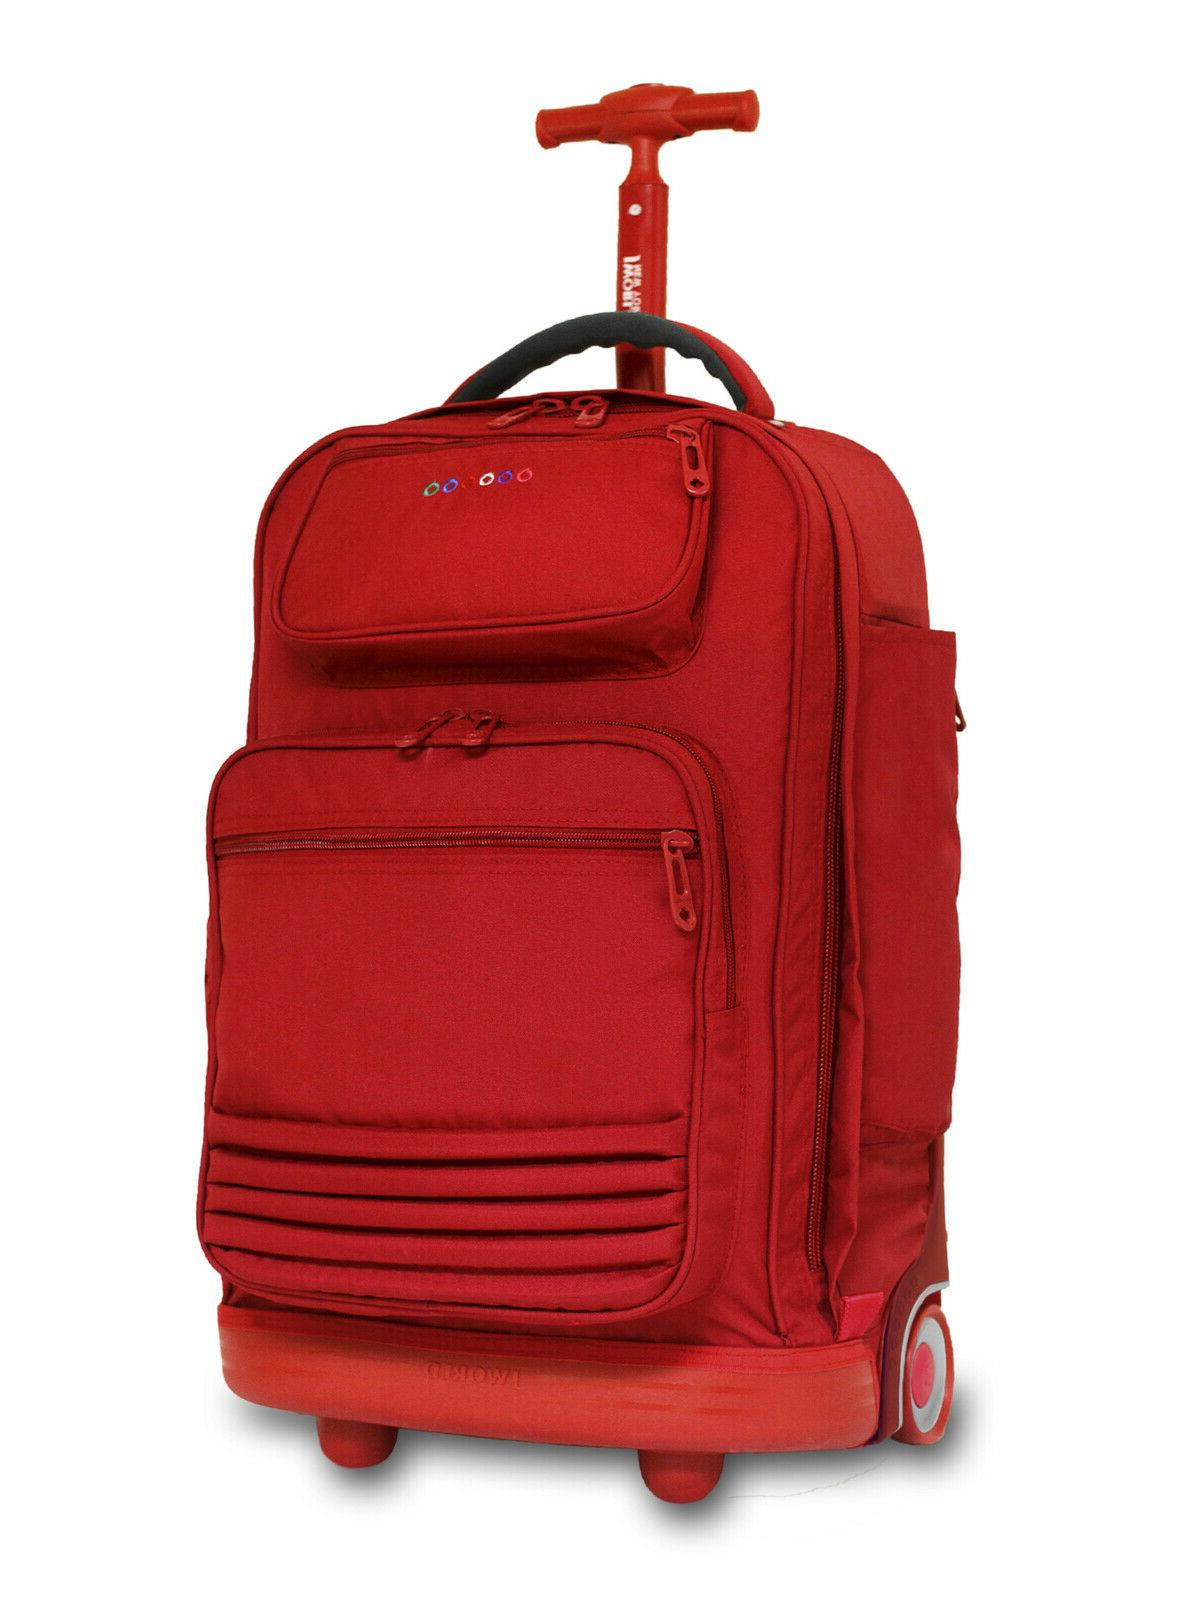 21 rolling laptop backpack business travel carry